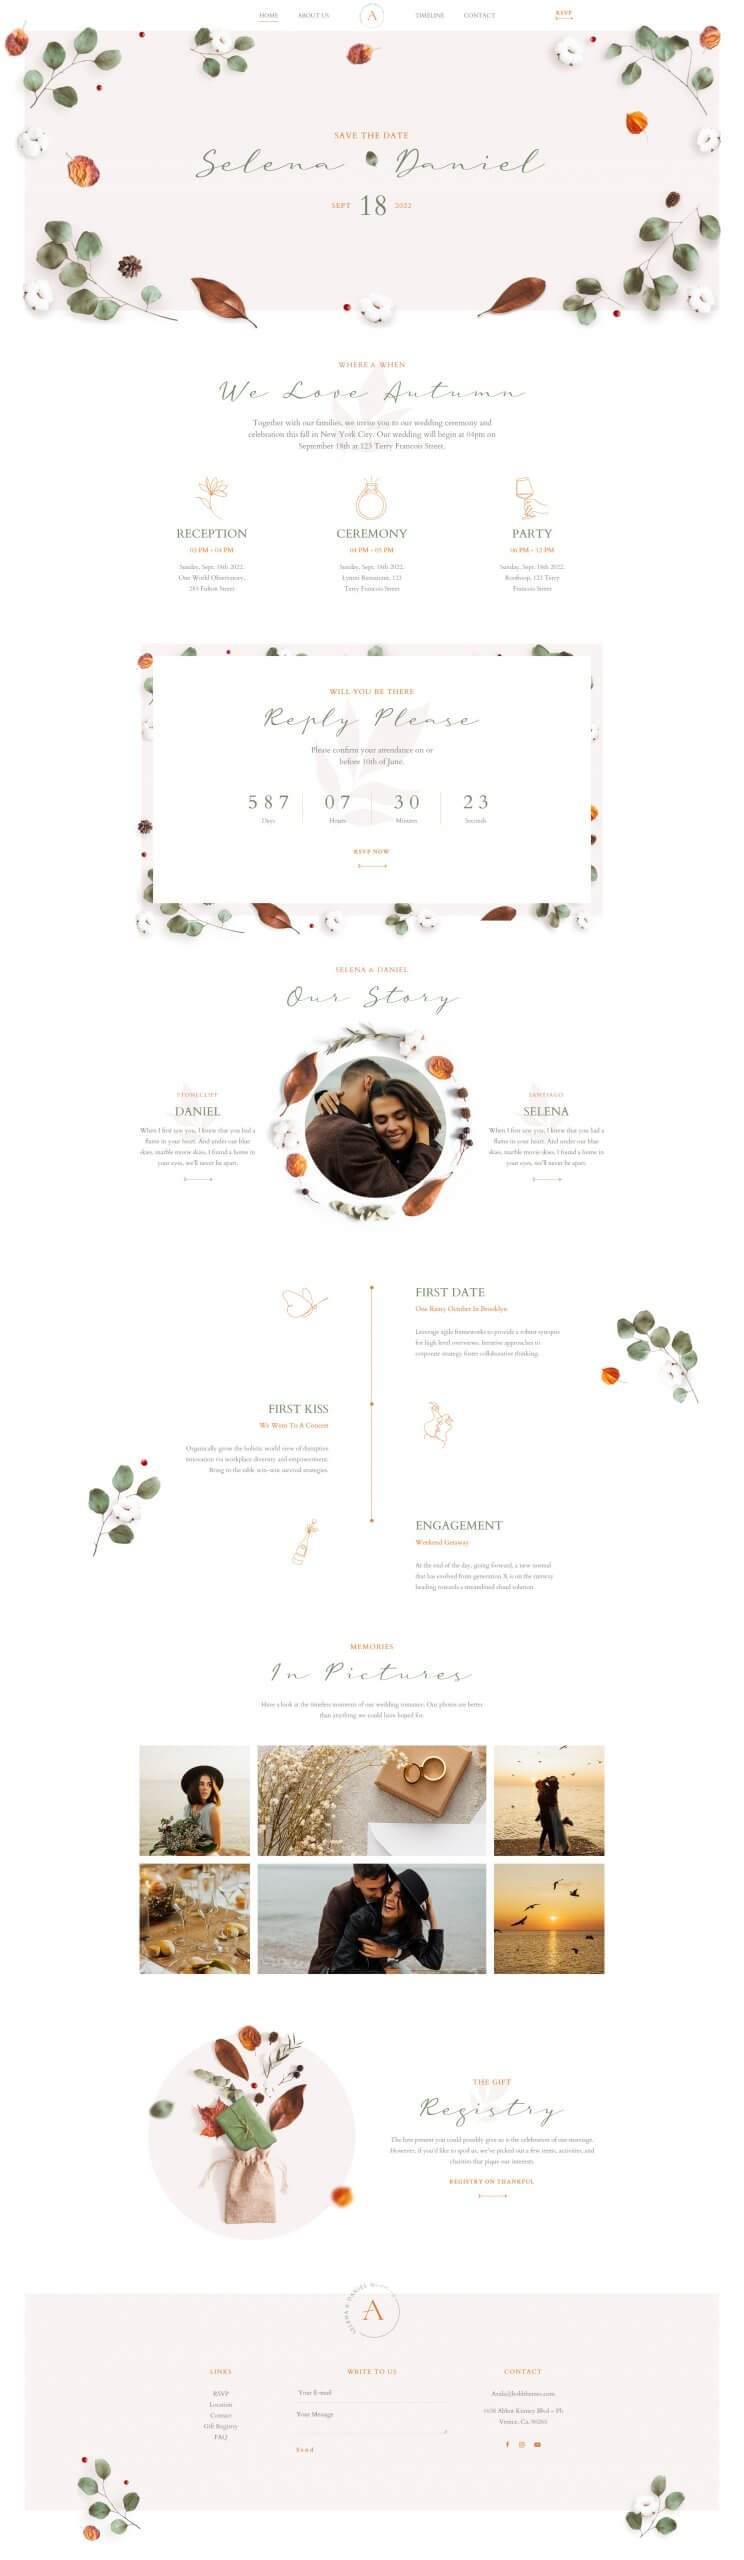 http://avala.bold-themes.com/wp-content/uploads/2021/02/Autumn-Home-04-scaled.jpg